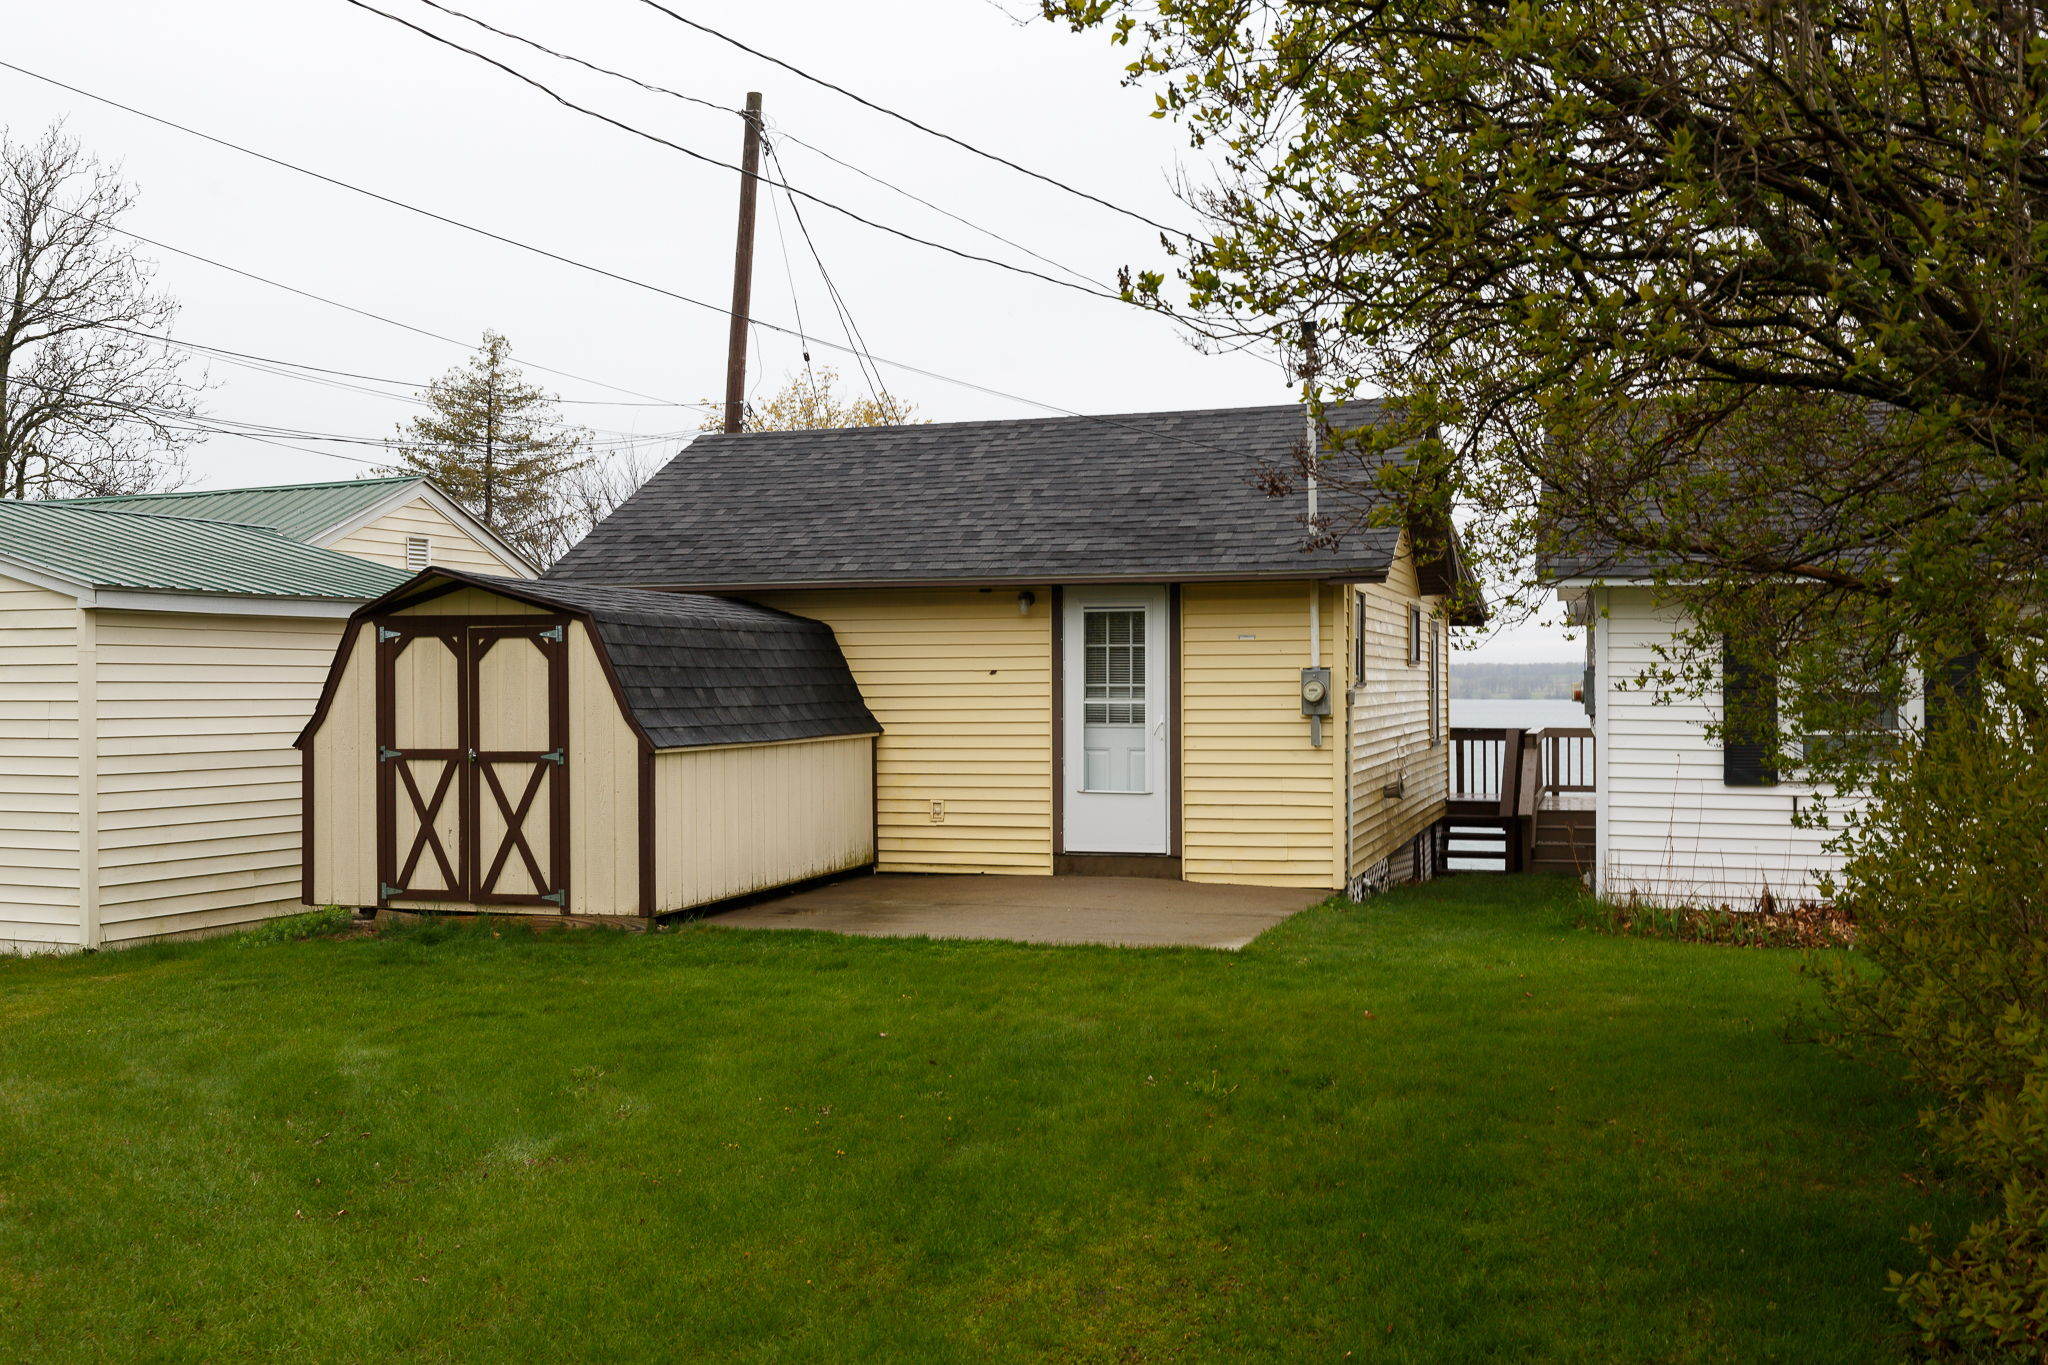 34277 Downing Ln, Cape Vincent, NY 13618, US